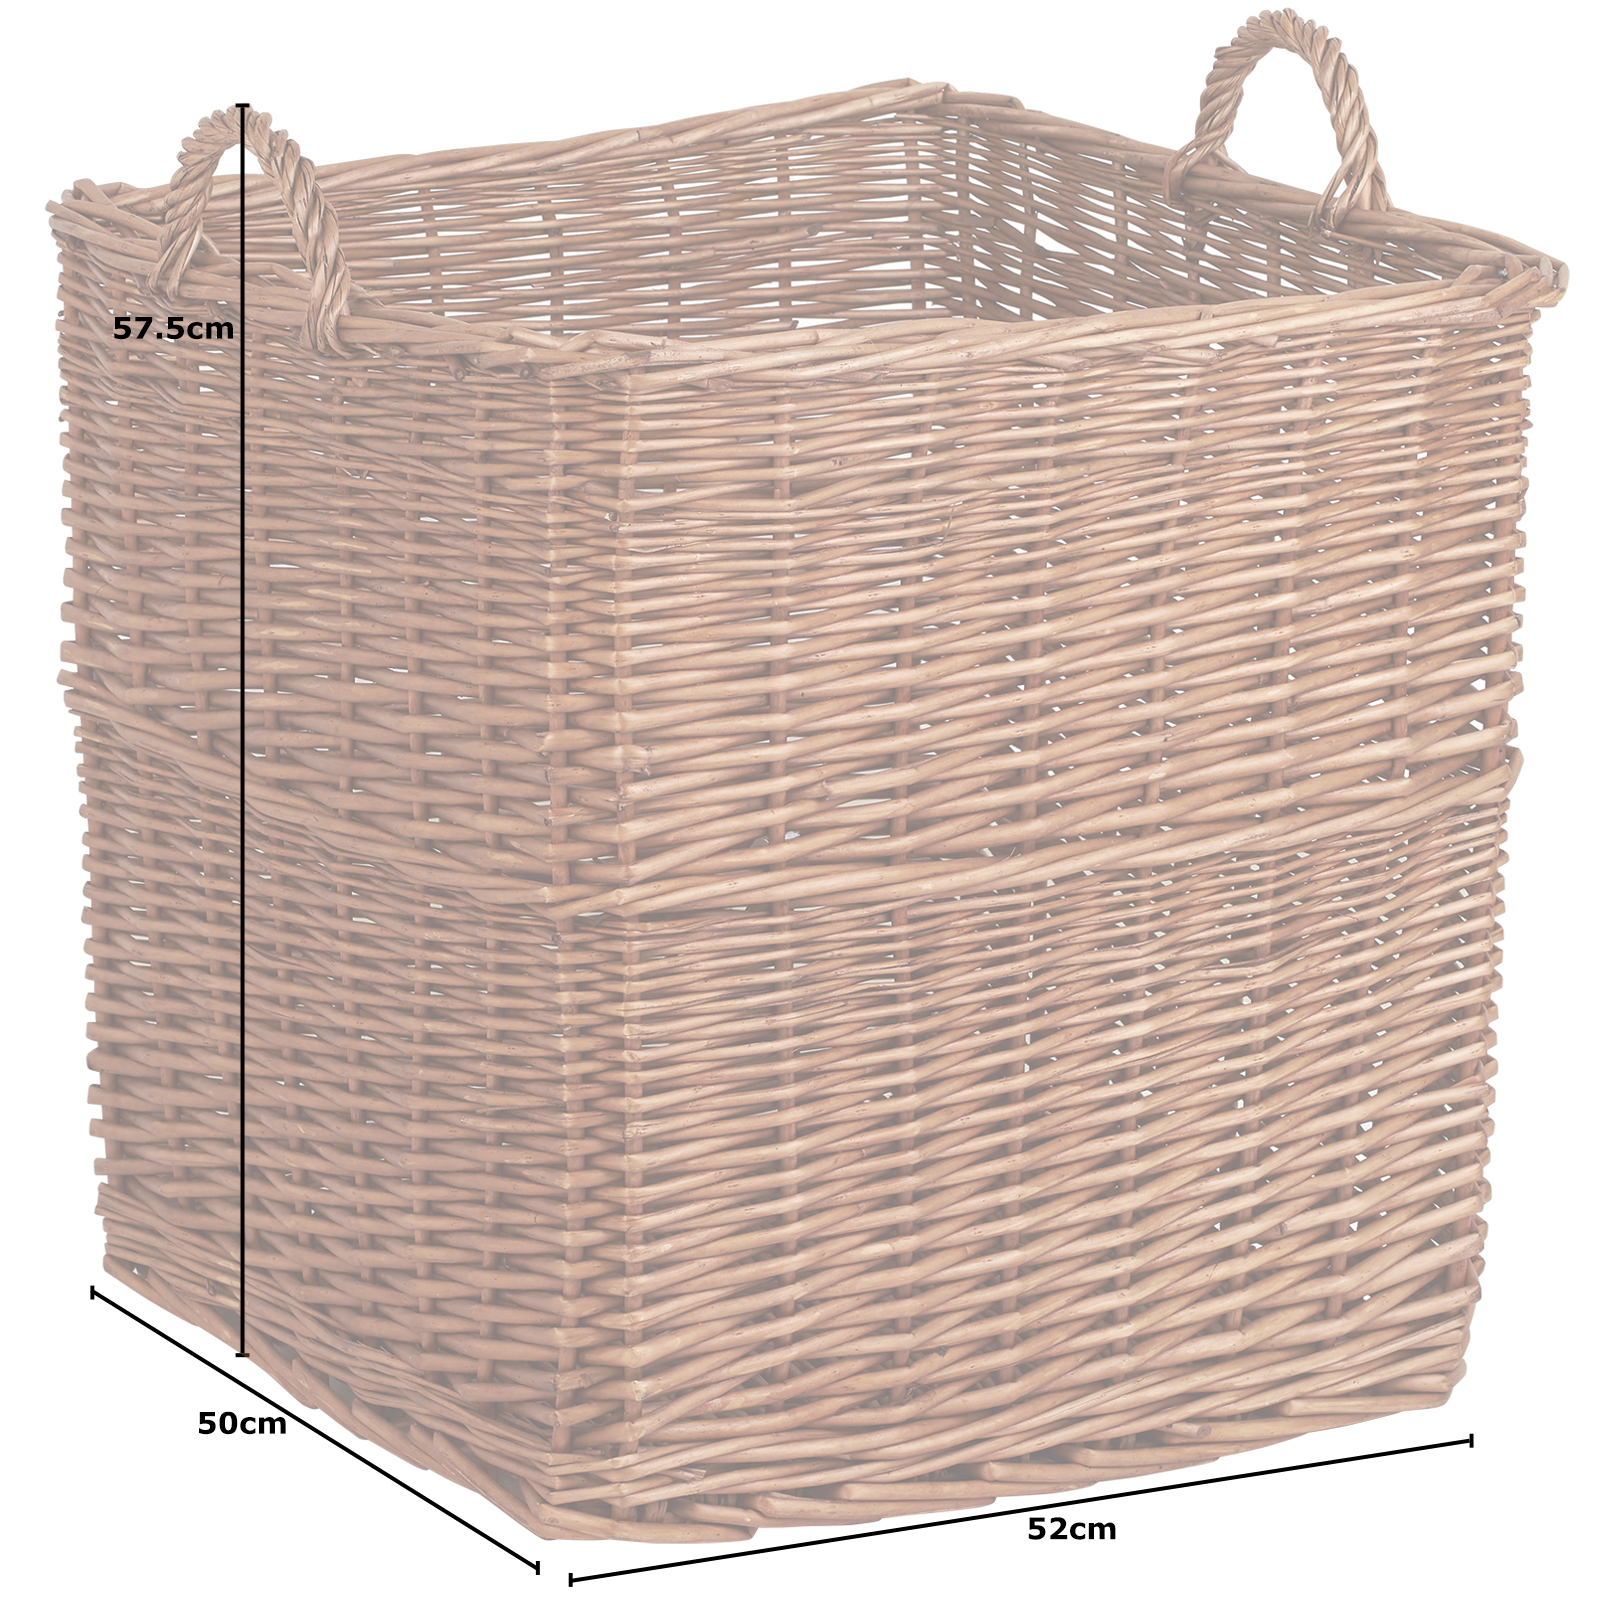 Hartleys Large Square Wicker Firewood Log Basket Fireplace Wood//Toy Storage Box